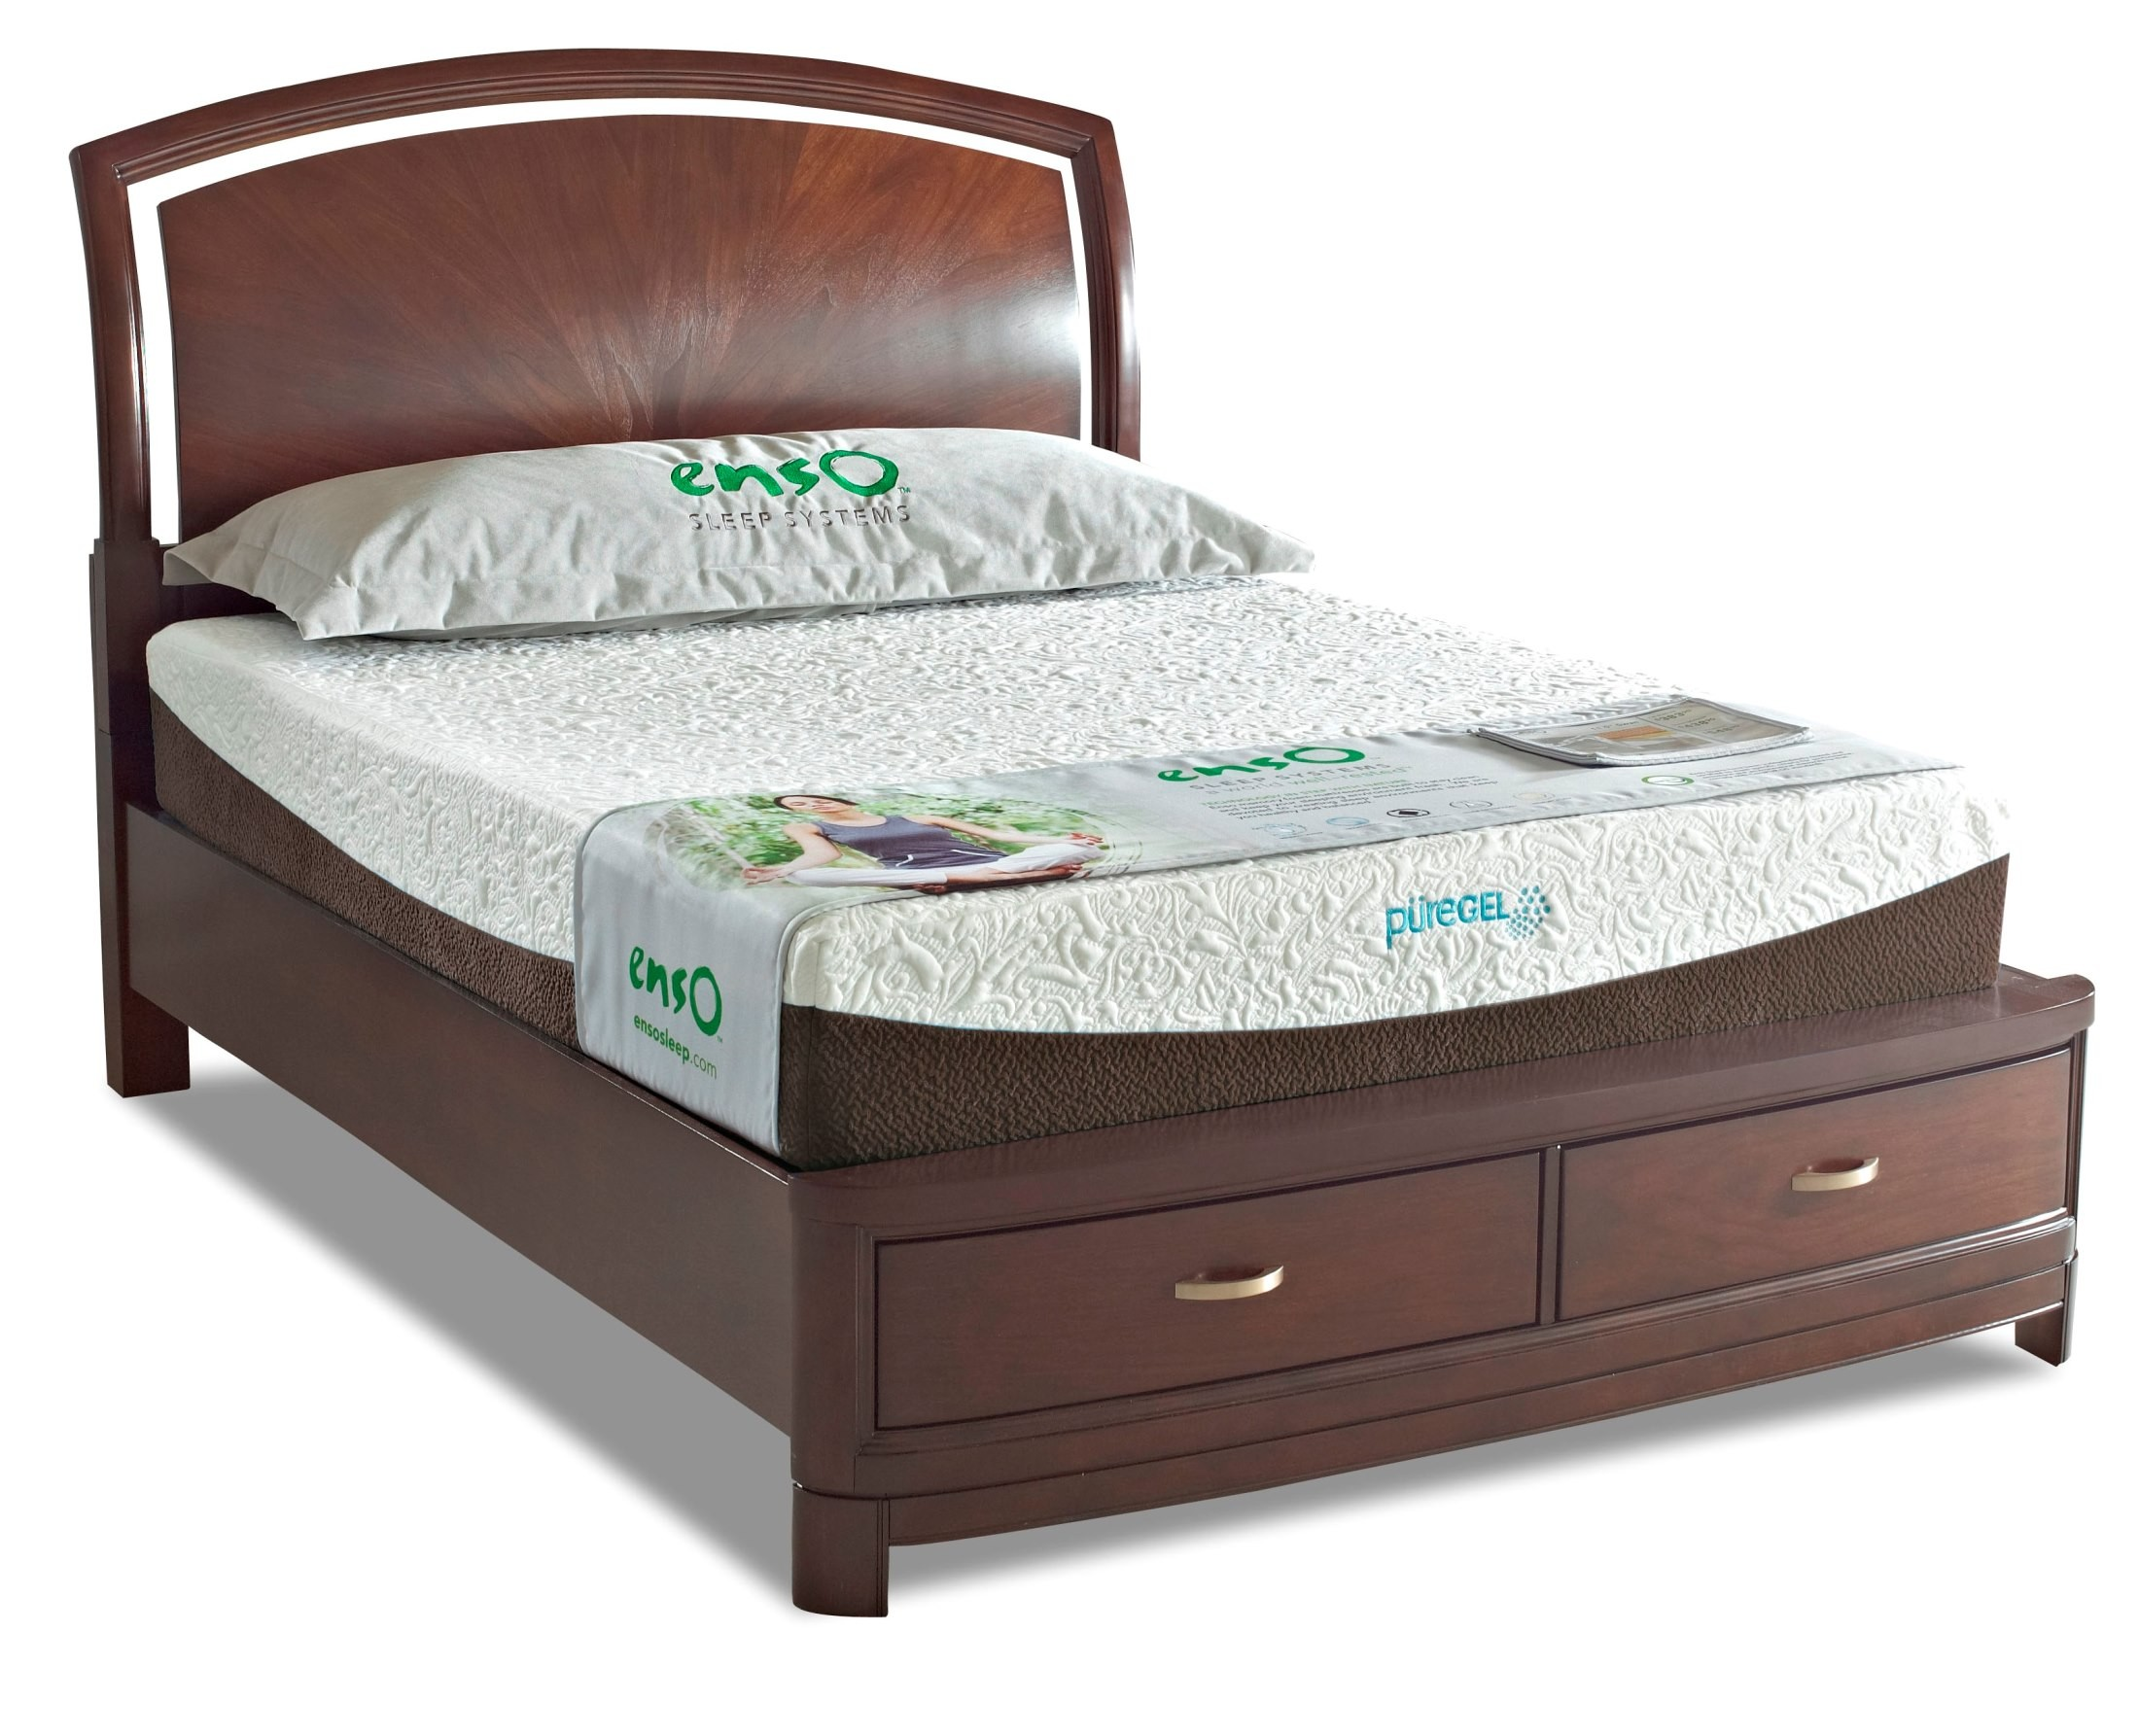 Denali 10 Memory Foam Xl Twin Size Mattress From Klaussner Denalitxltmat Coleman Furniture